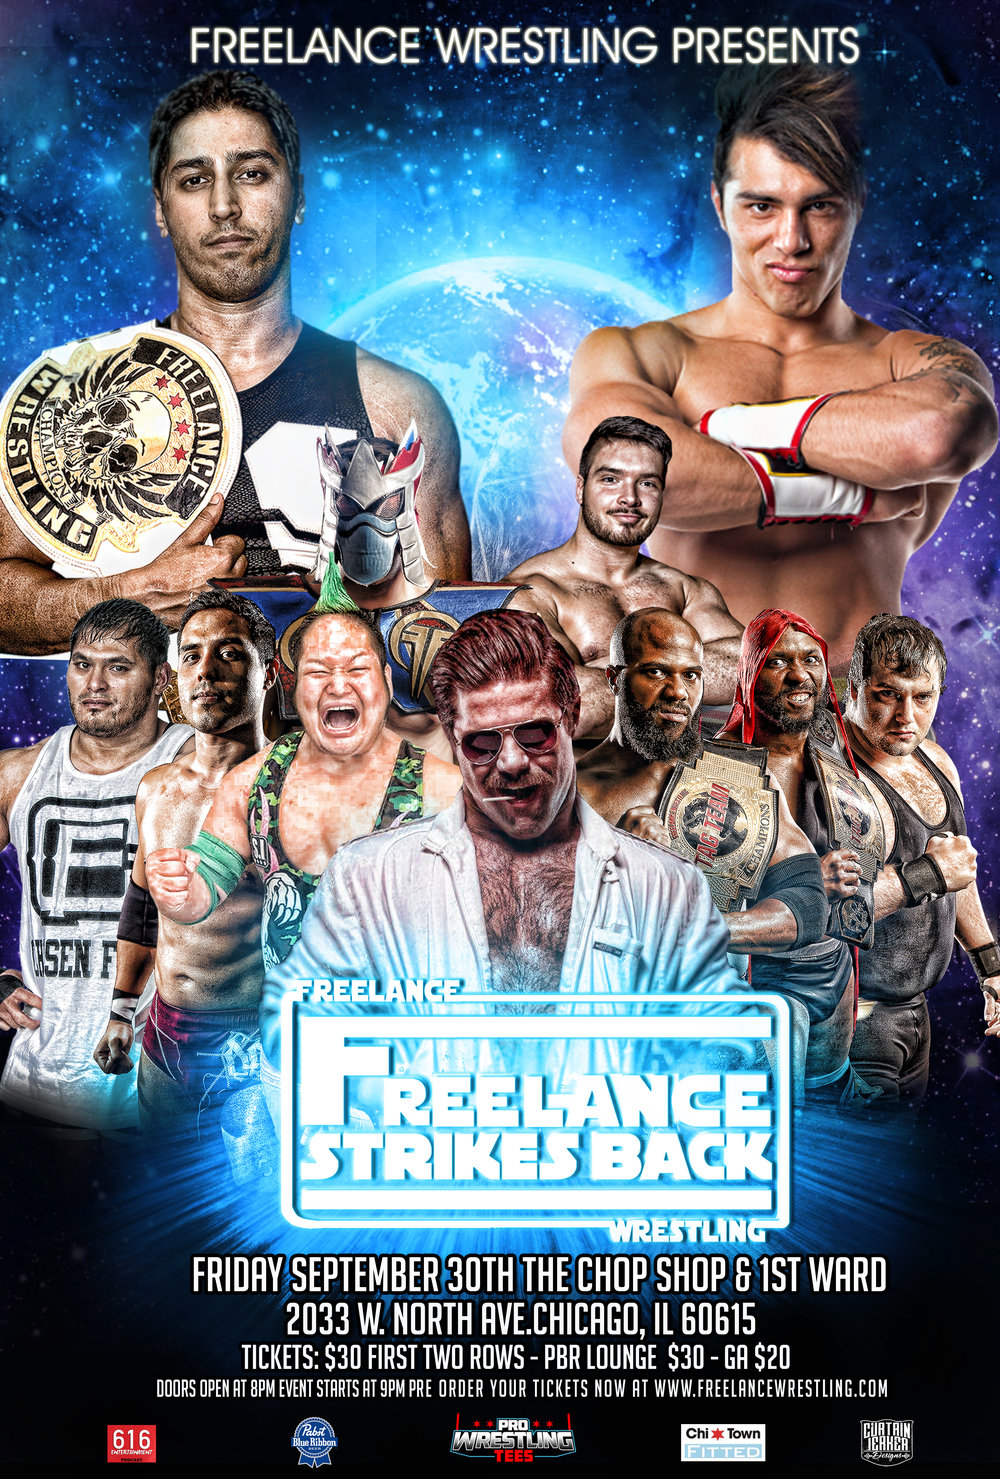 Copy of Freelance Wrestling